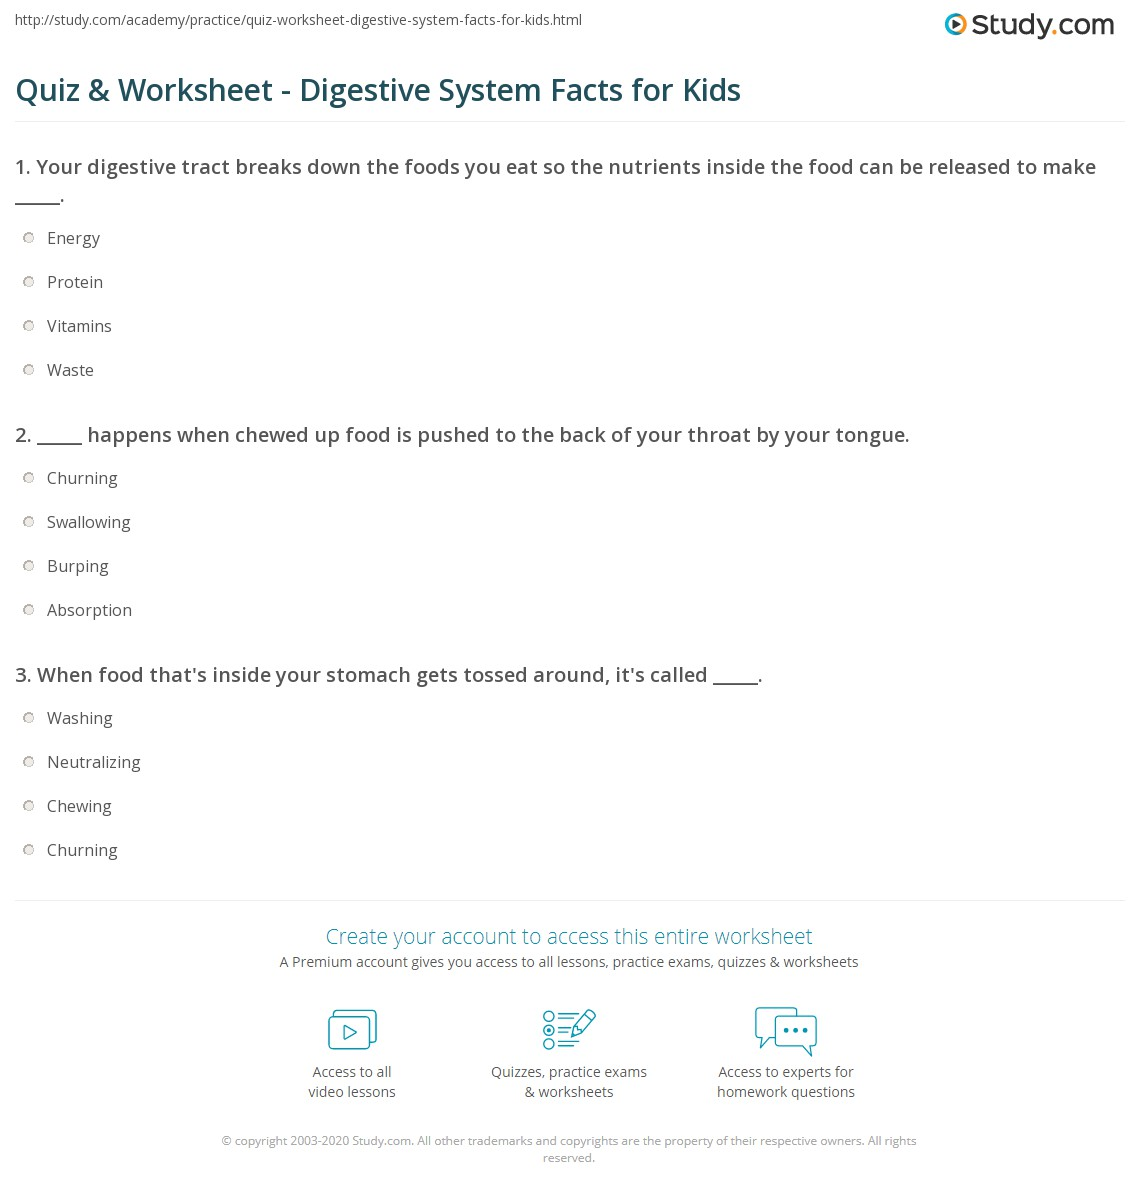 Quiz Worksheet Digestive System Facts For Kids Study